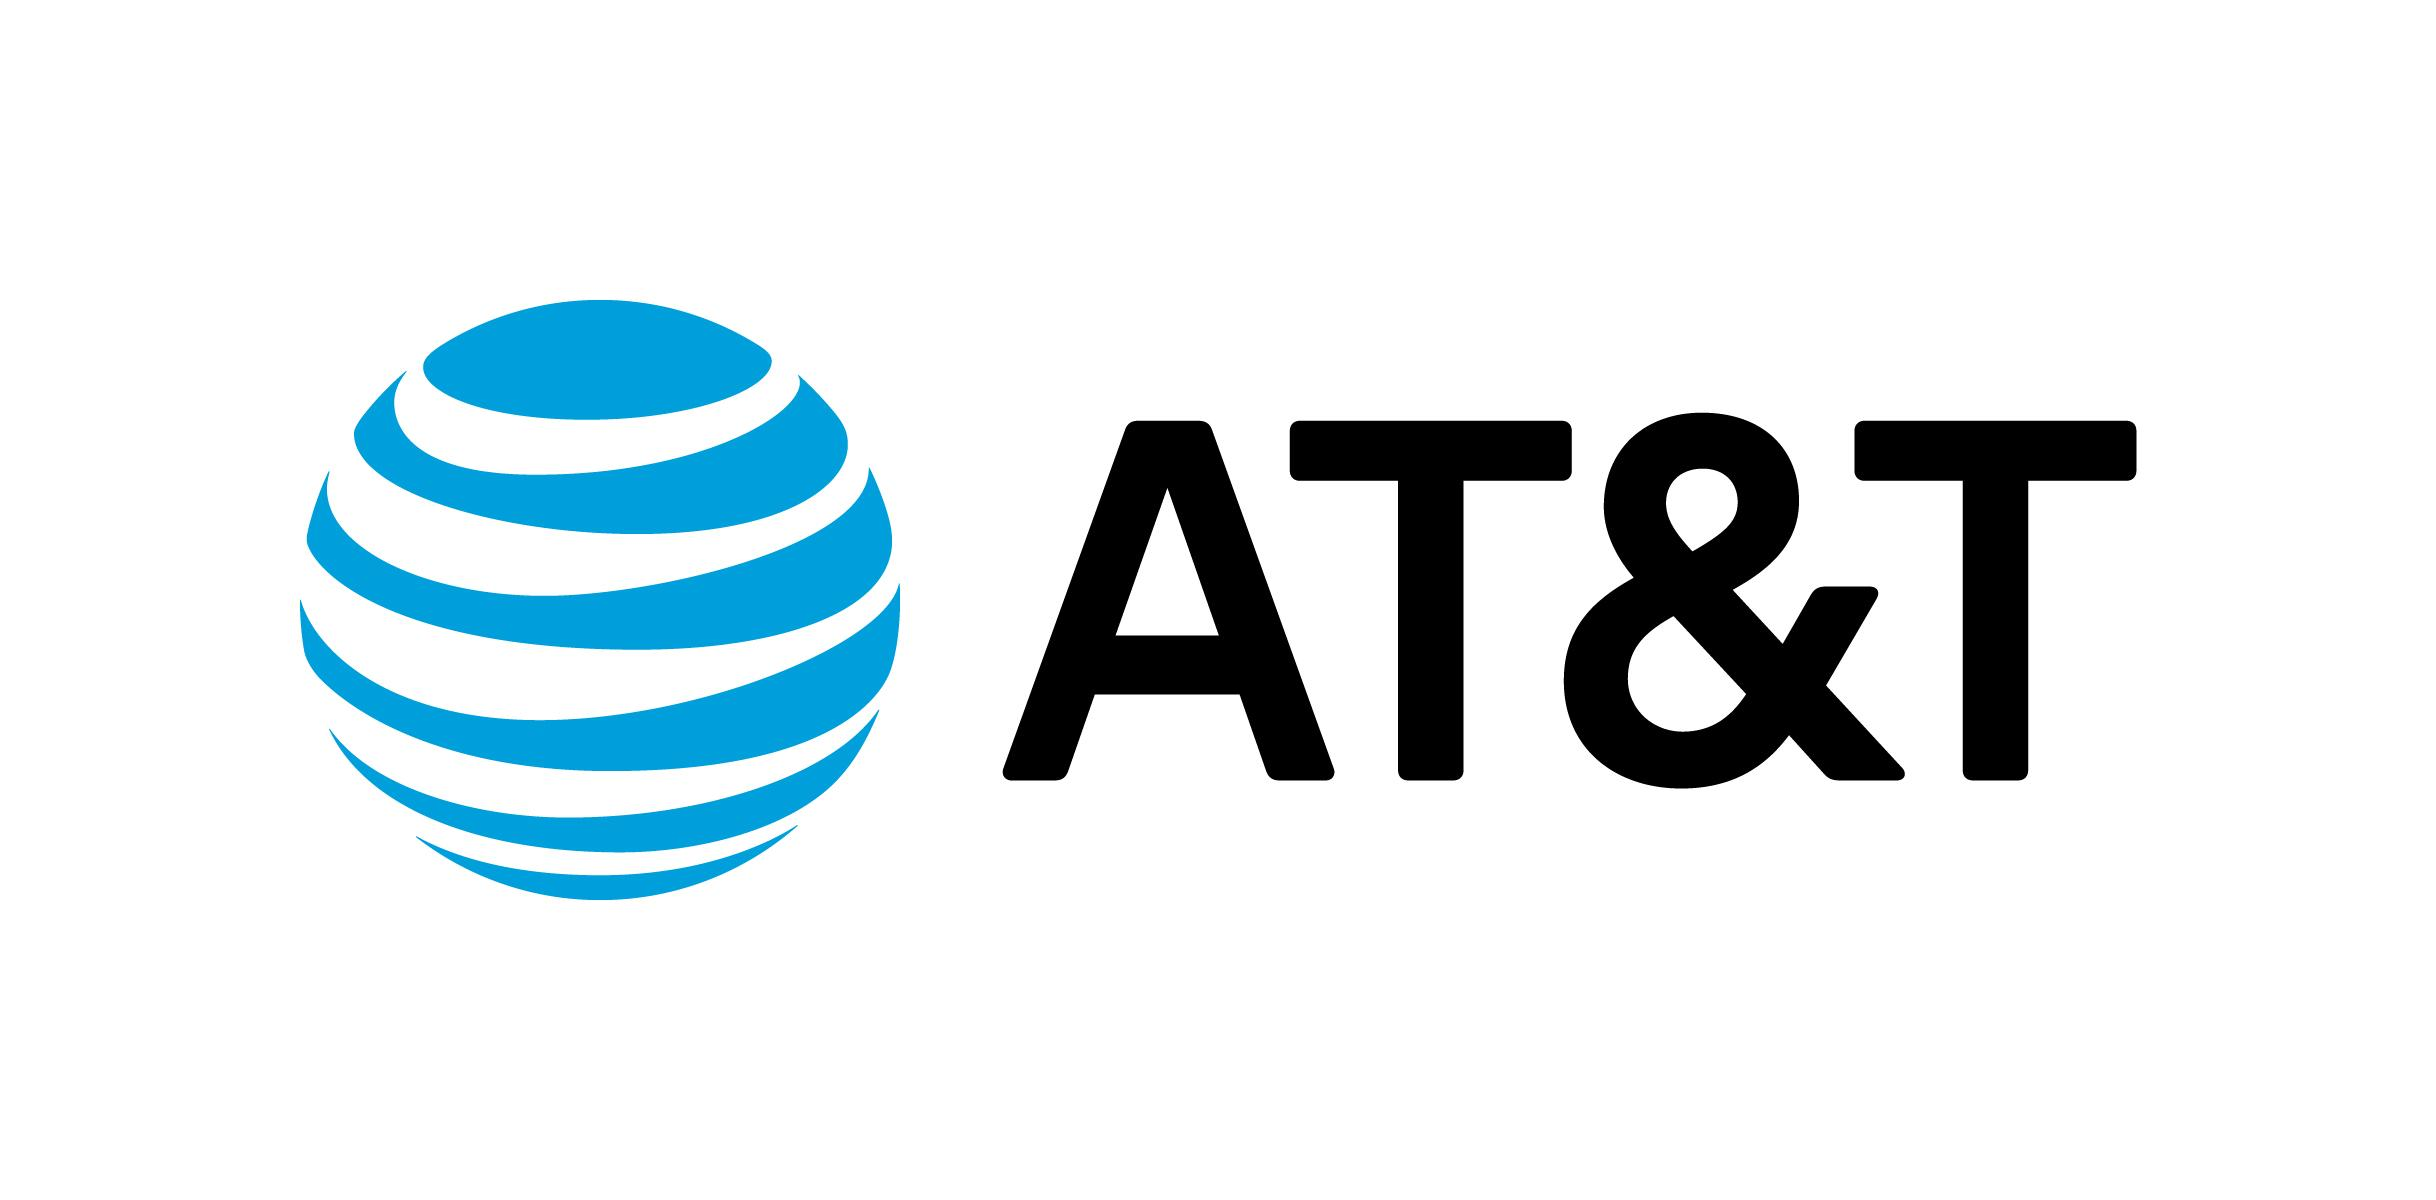 Shall you fear att and its 55 yield att inc nyset we all know atts outstanding dividend history but given more intense competition and the pending giant acquisition of time warner nysetwx buycottarizona